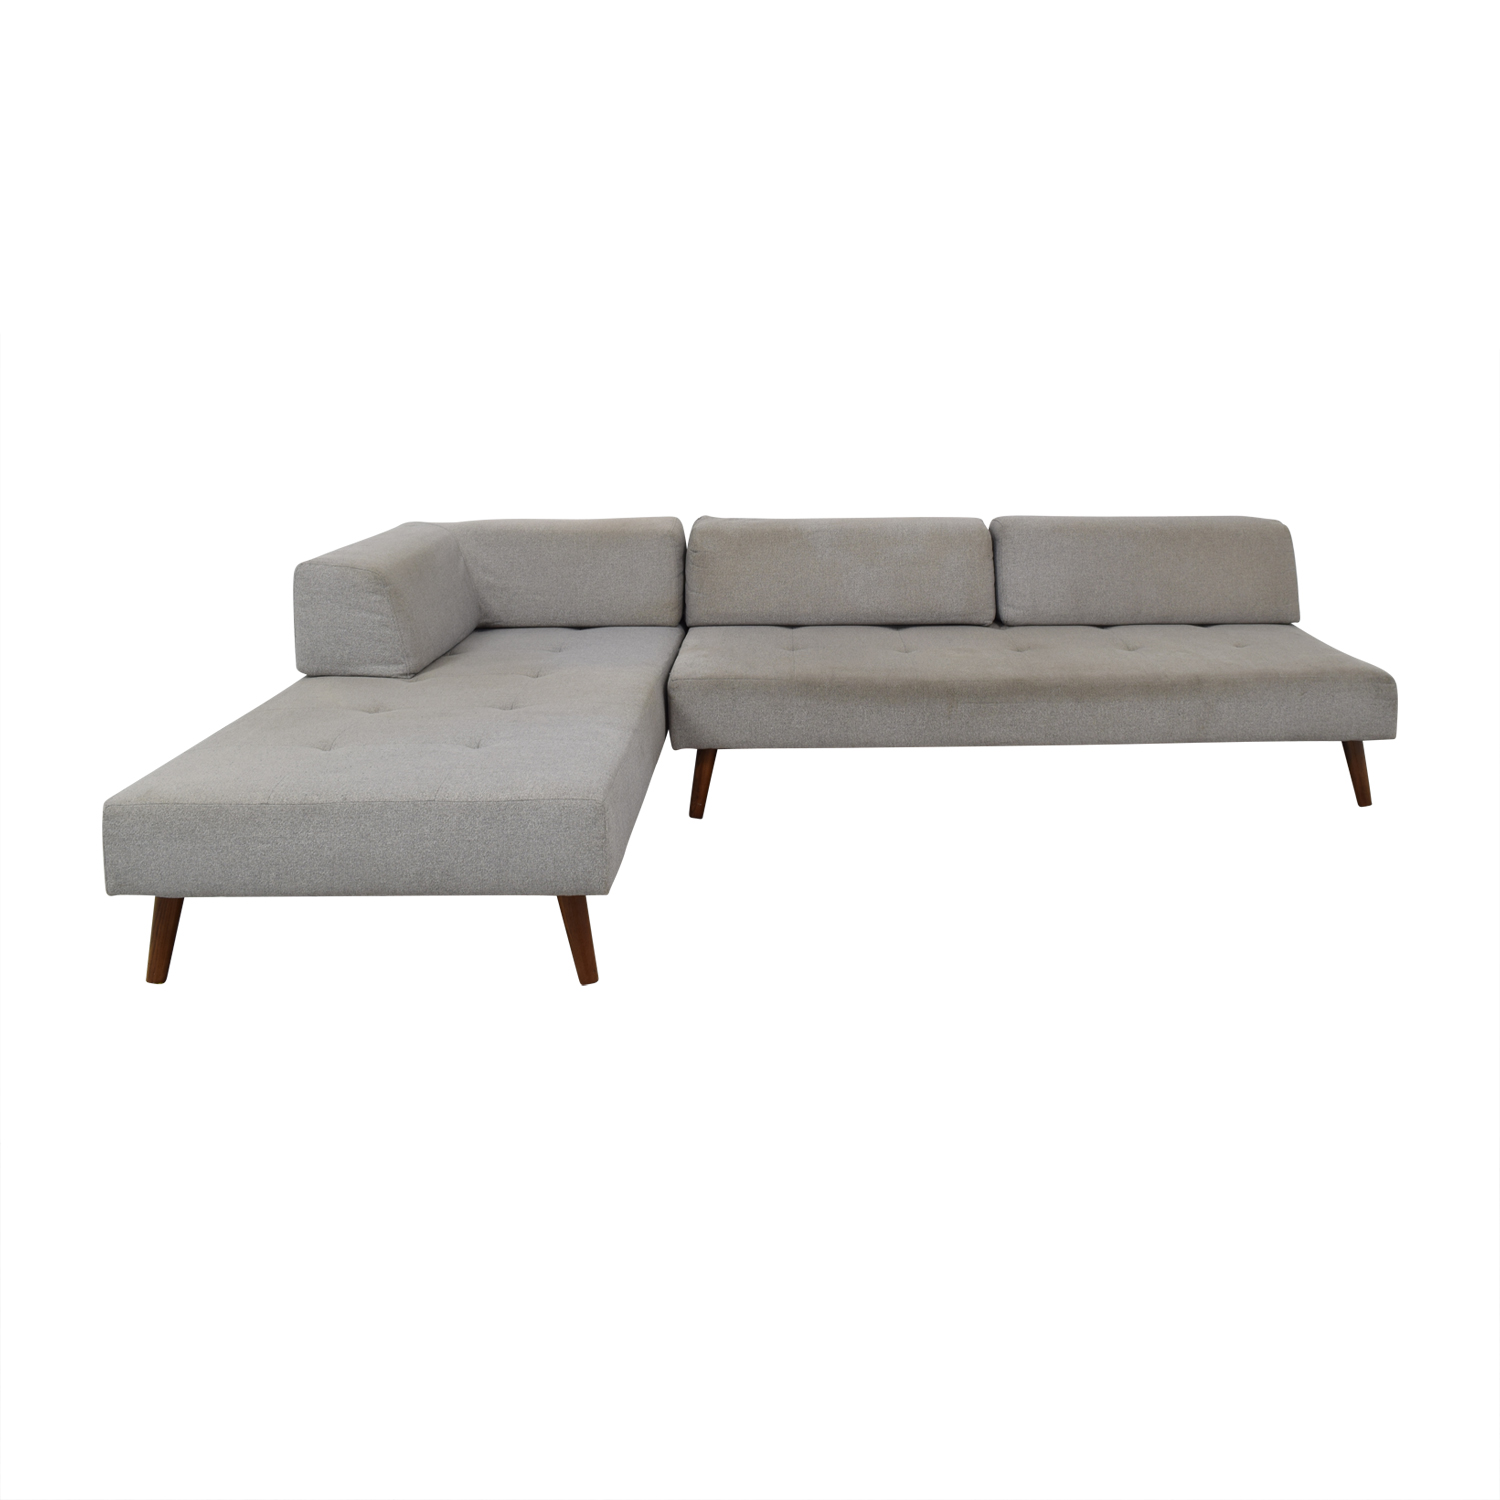 West Elm West Elm Sectional Couch nj